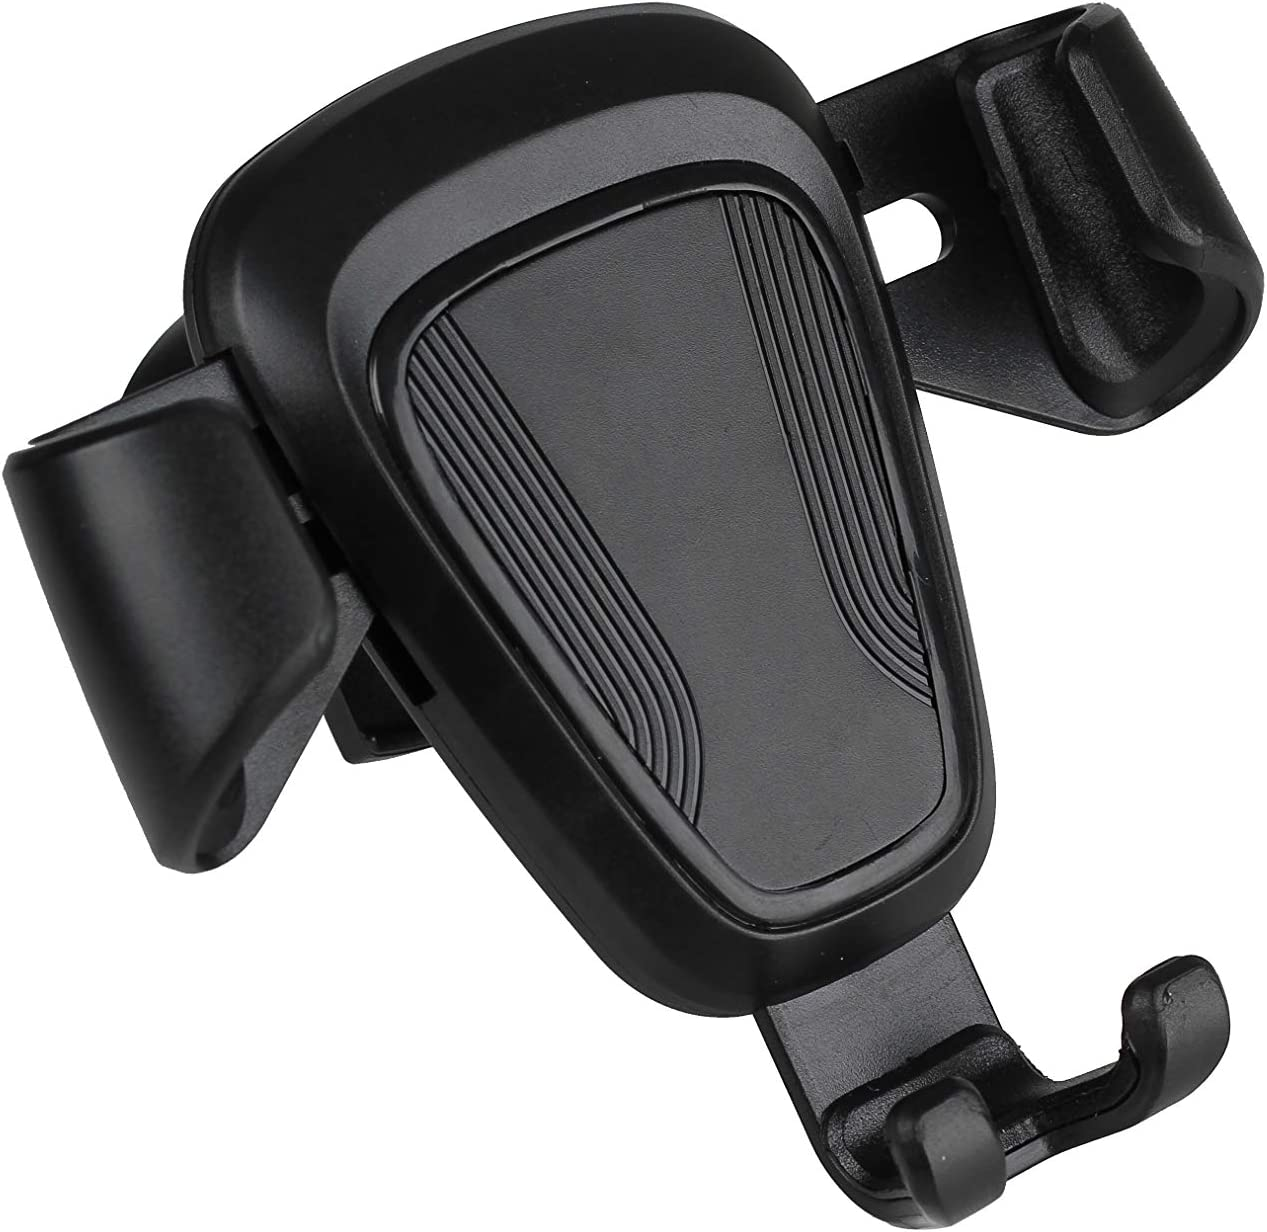 Air Vent Holders for iPhone 11 Pro Xs Max Xr X 8 7 6 Plus Samsung Galaxy Note 9 Pixel LG Wuchieal Car Phone Mount Holder Universal Hands Free 360 Rotating Auto Cell Phones Hodlers with Double Clip